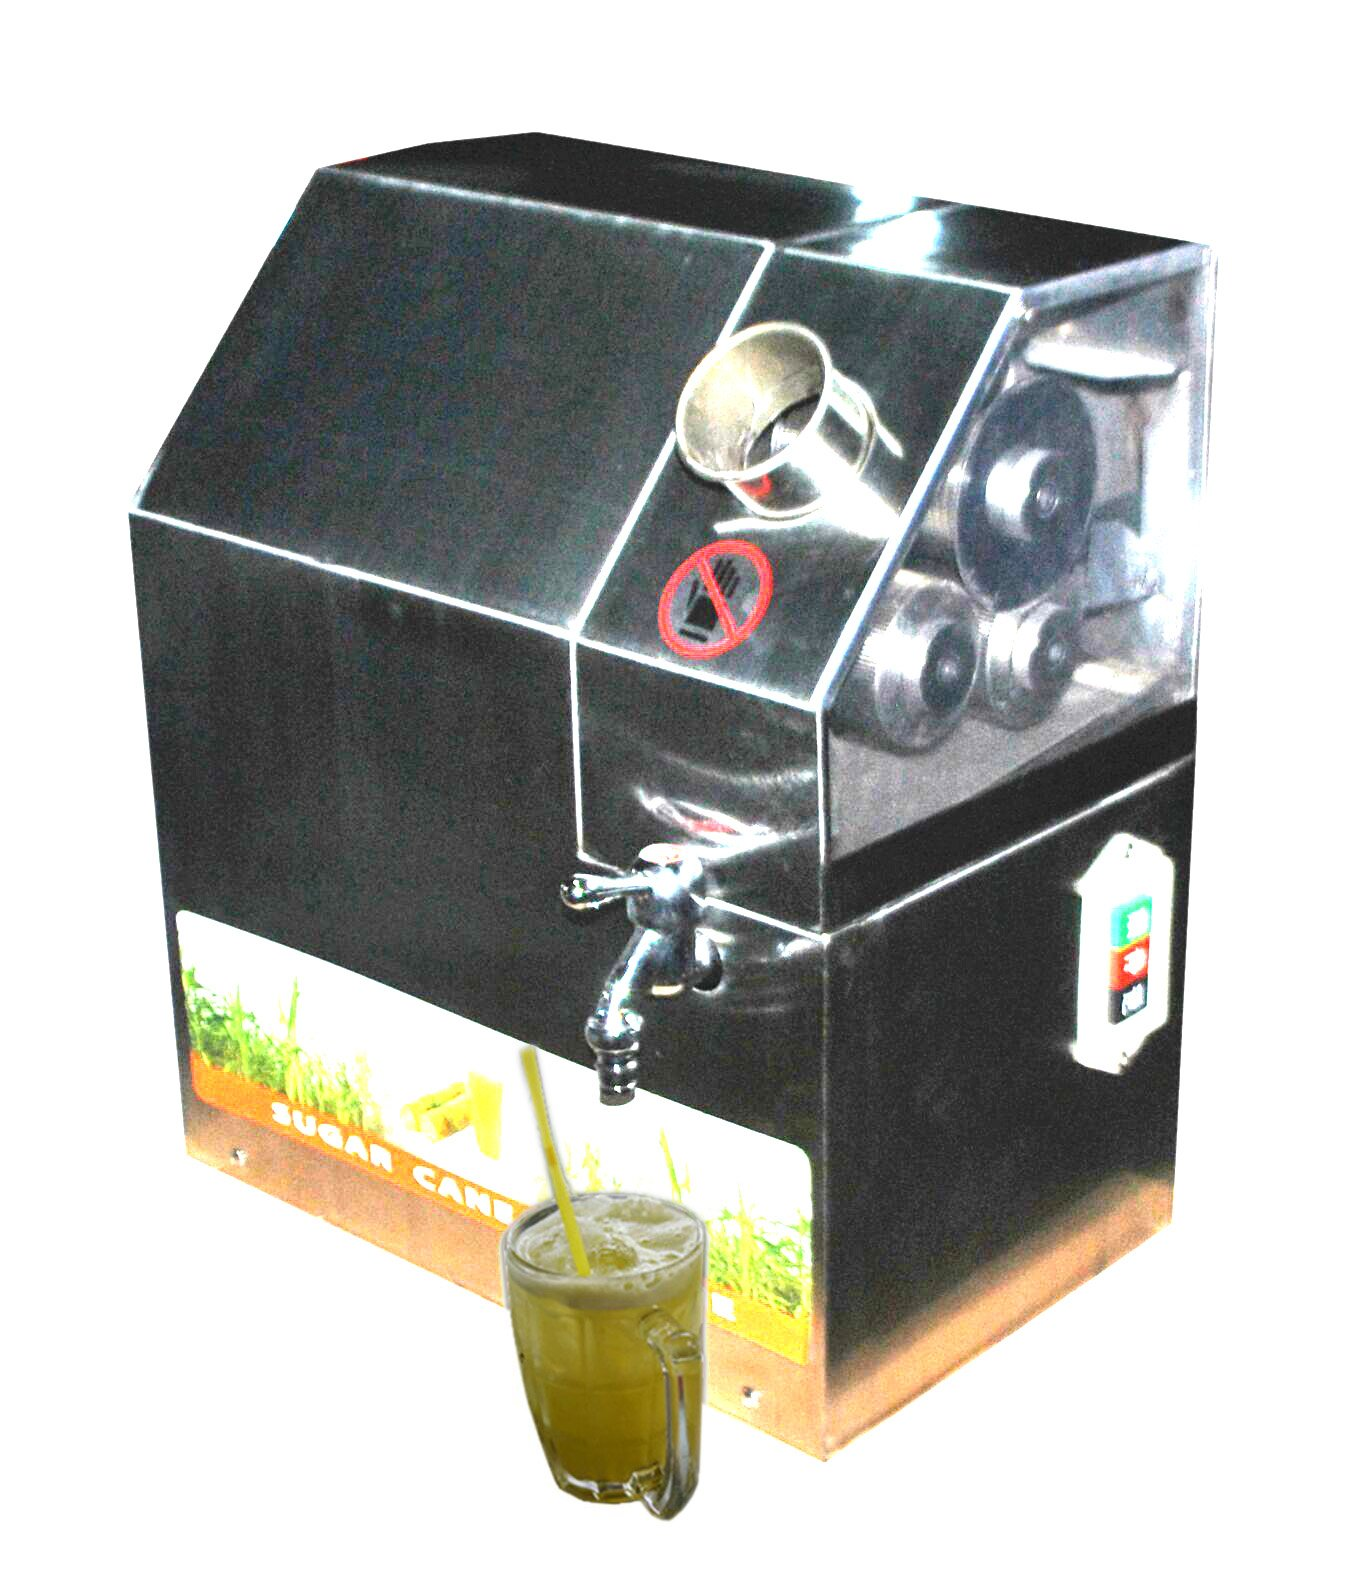 110V Automatic Commercial Sugarcane Juicer Sugar Cane Grind Press Machine Stainless Steel